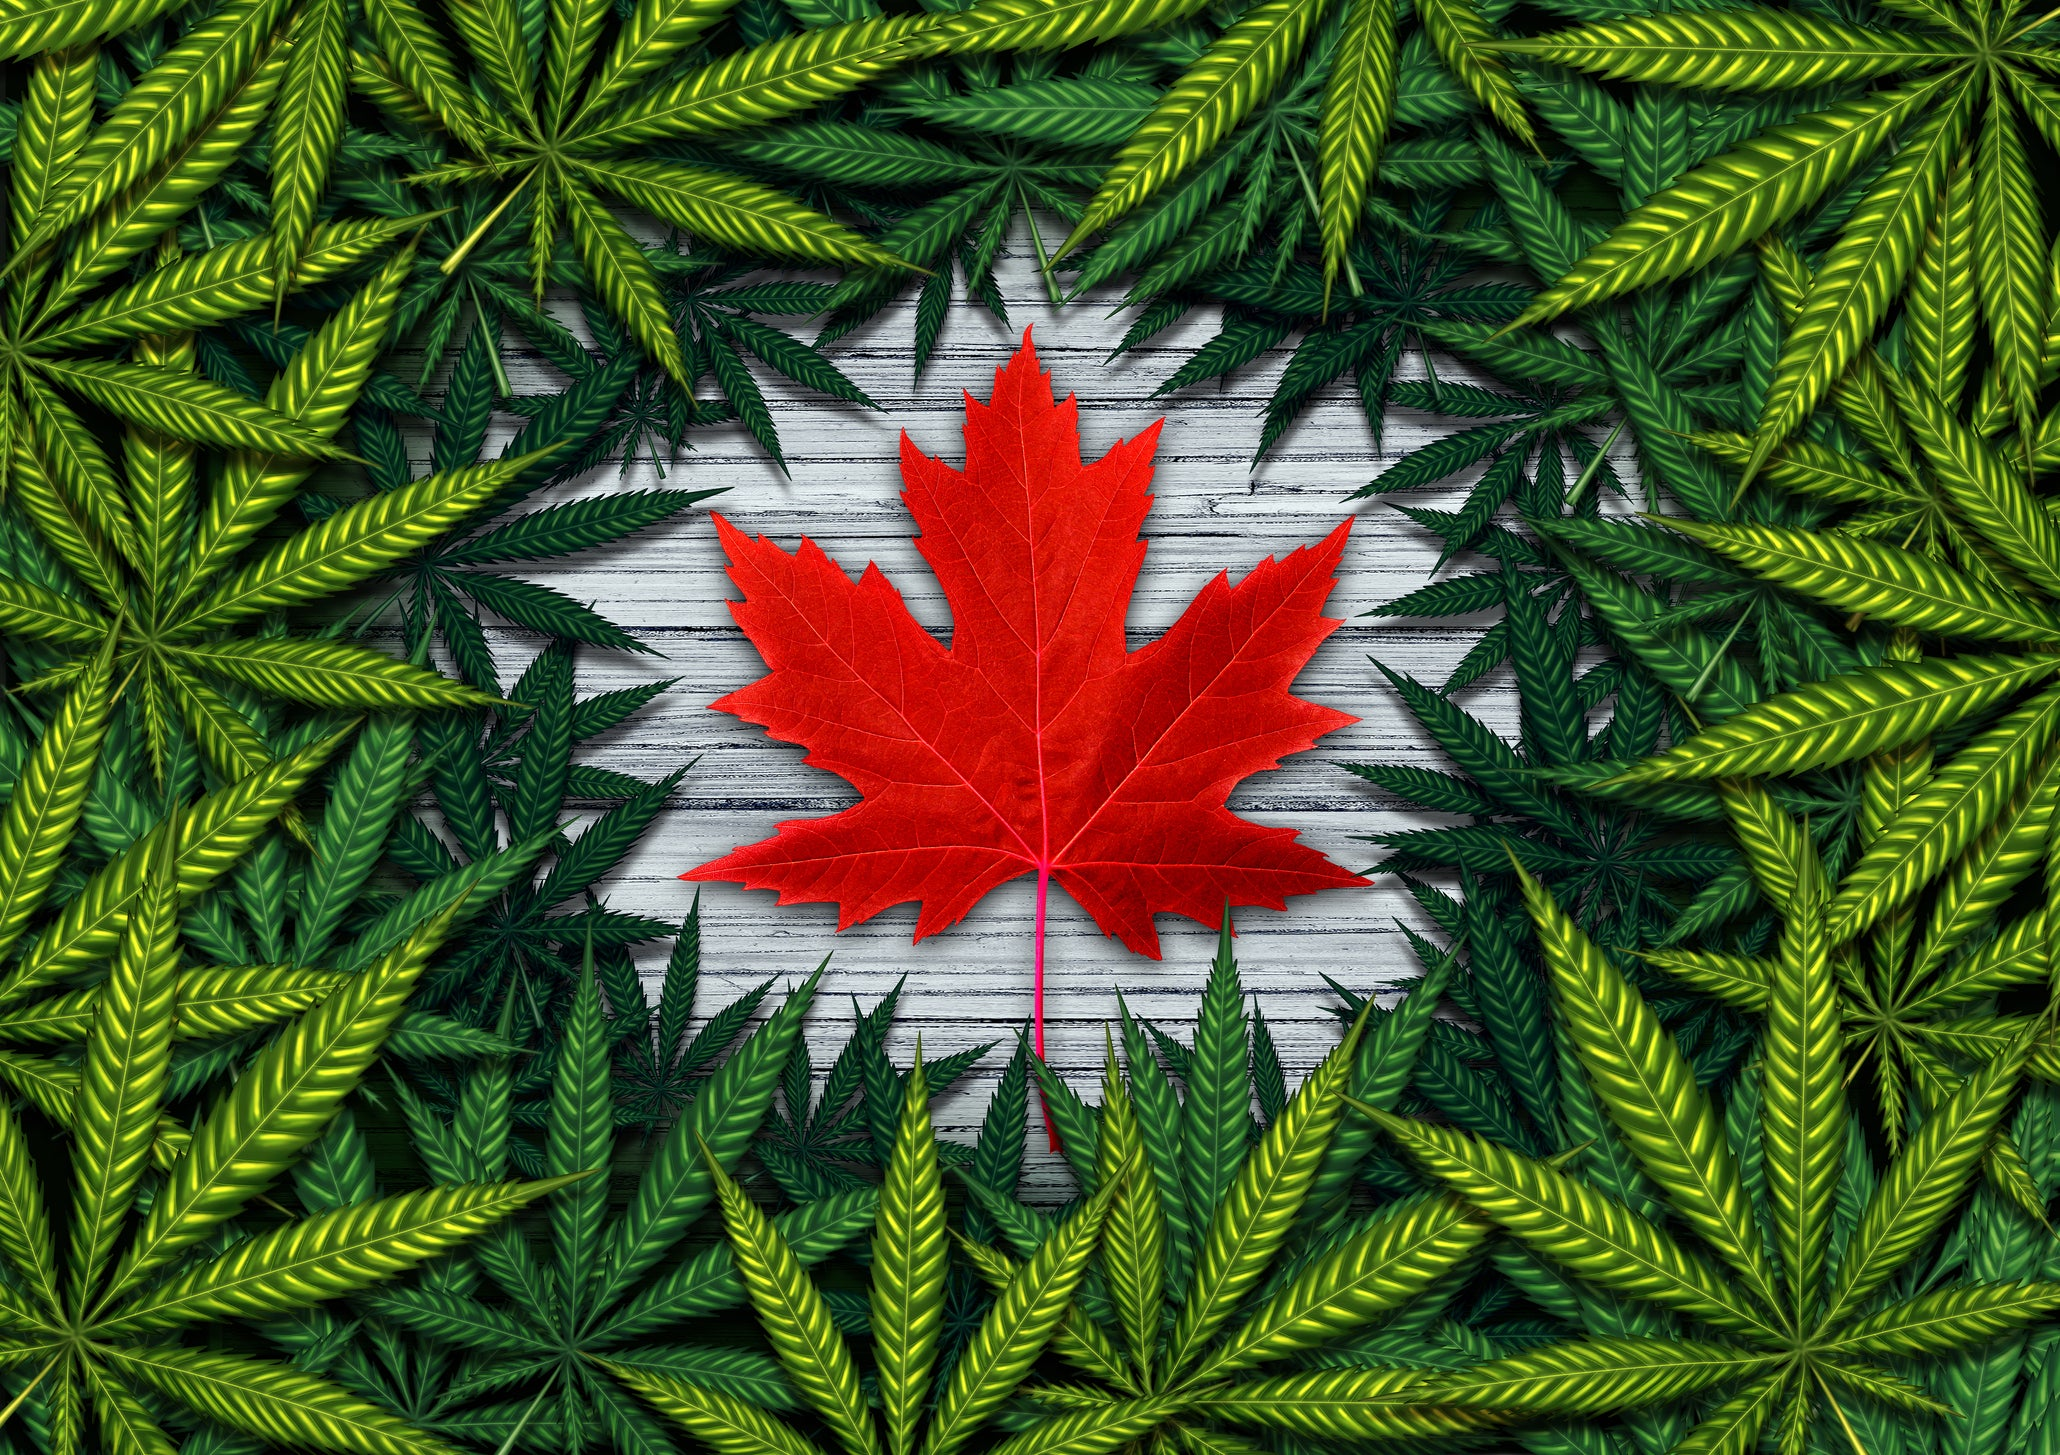 Red maple leaf surrounded by cannabis.